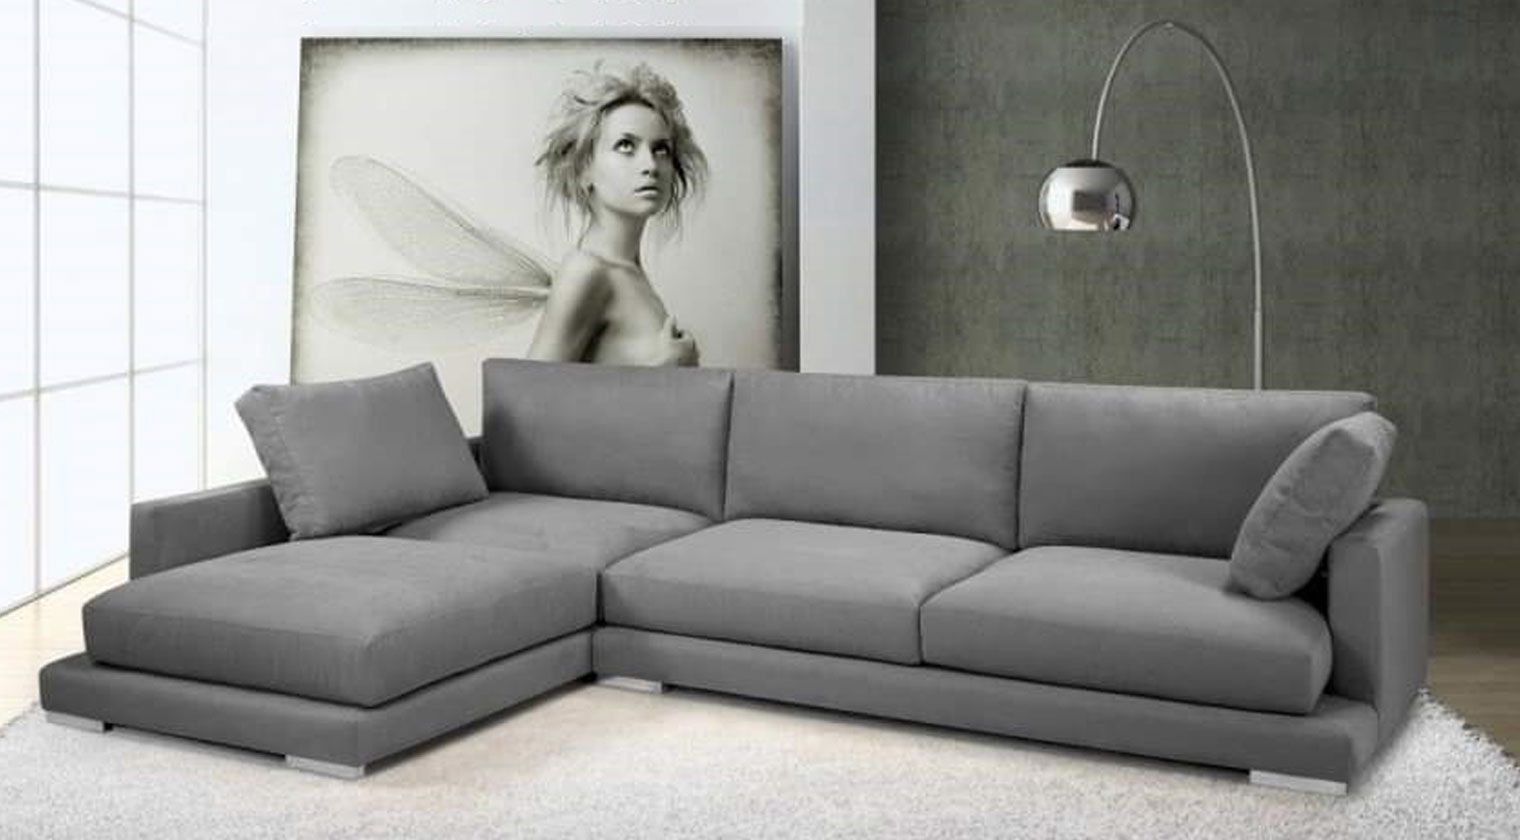 Imagen-Chaise-Longue-Tela-PERSEO-1